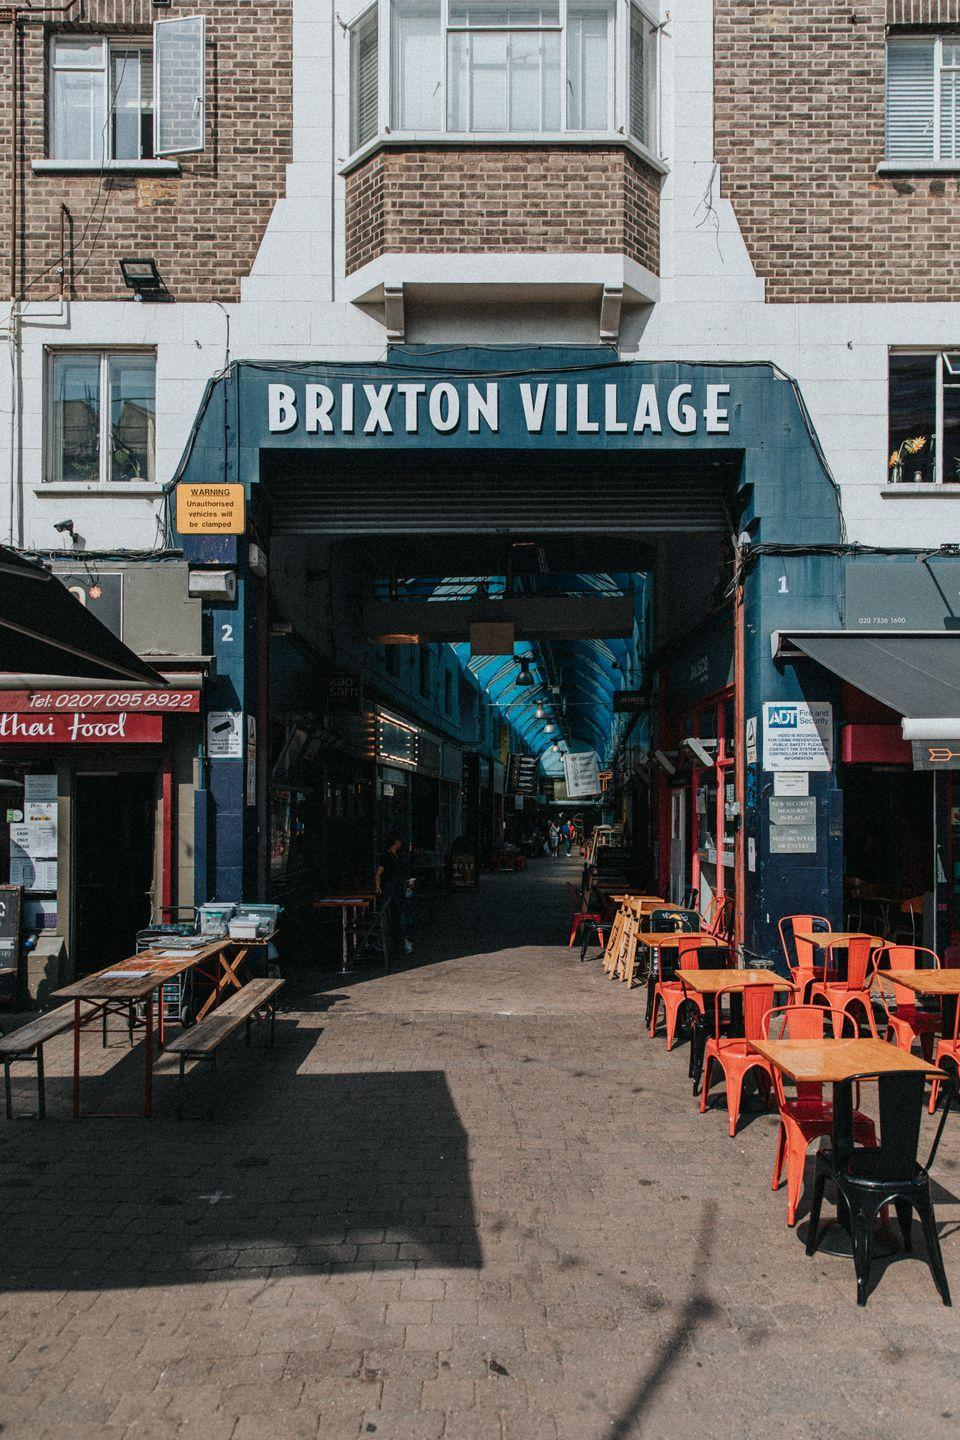 <p>All of the restaurants found in the south London market village will be opening thanks to the courtyard. The venue are also starting a #BACKTOBRIXTON campaign offering diners 50% off from Monday 12 to Wednesday 14 April (up to the value of £10 per person) to encourage residents to head back to its eclectic collection of restaurants.</p>